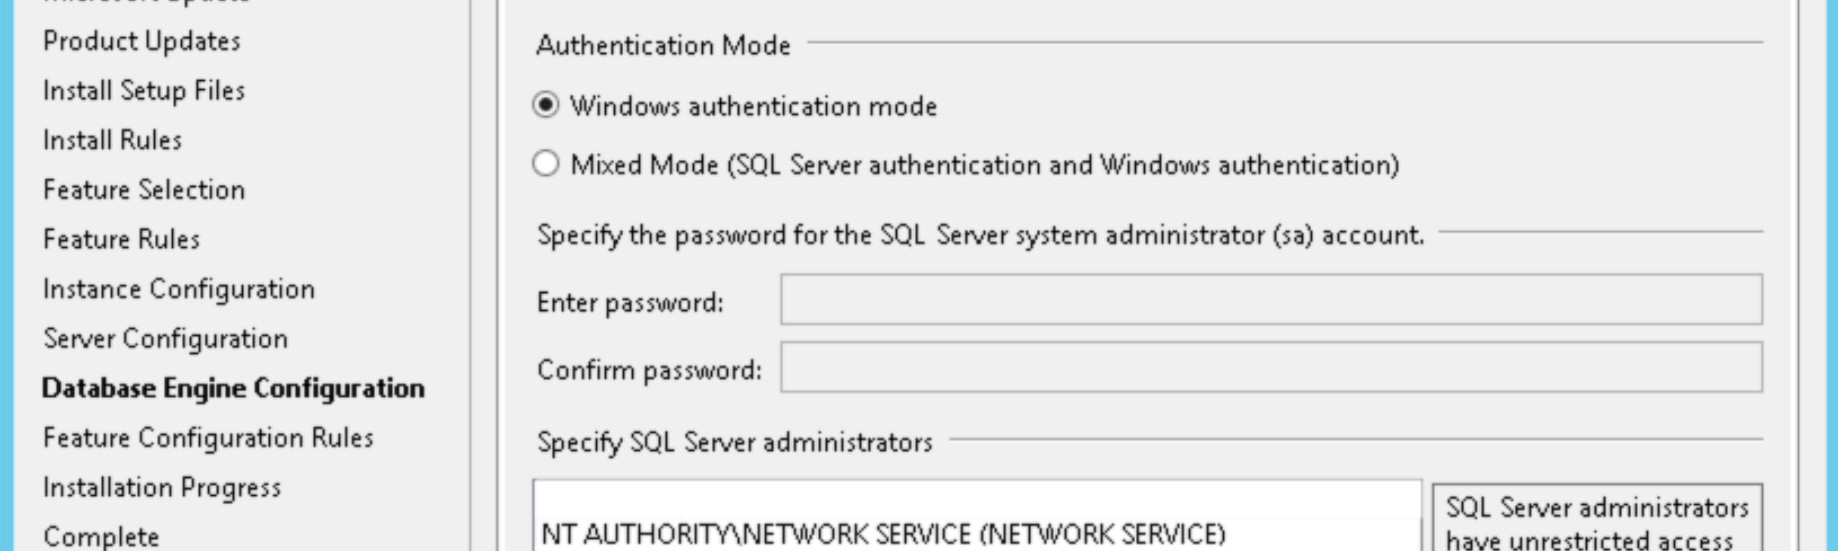 Disable TLS 1 0 on Windows Server 2012 R2 with Remote